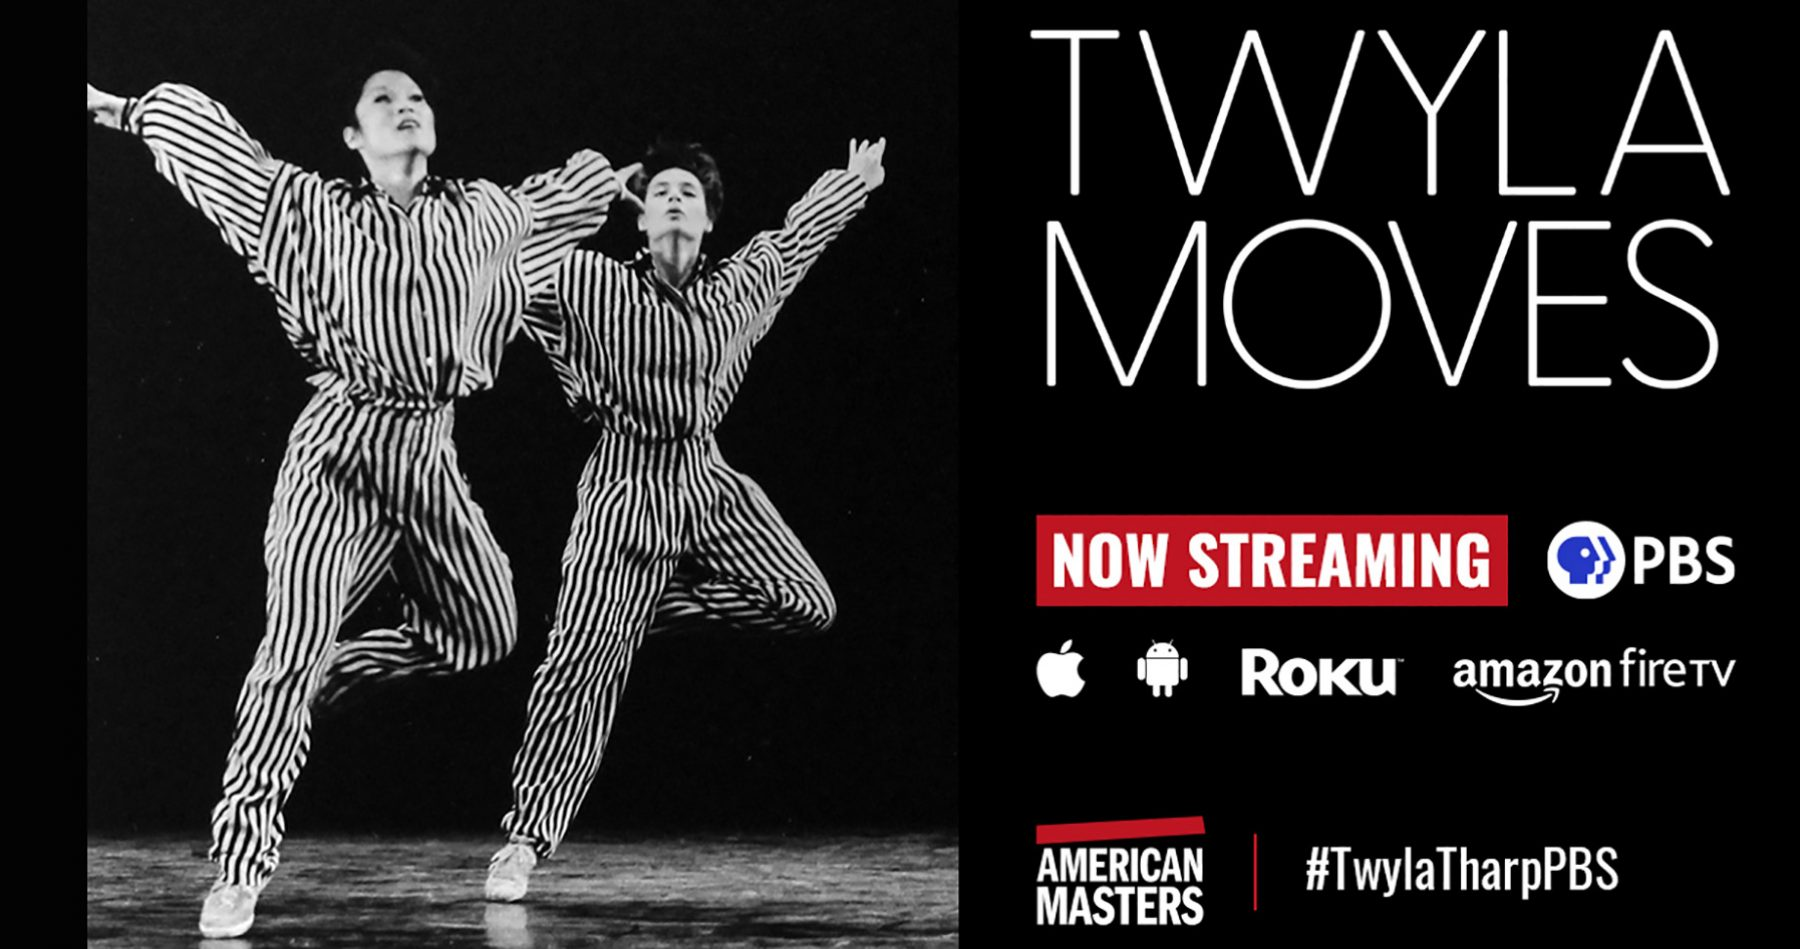 American Masters: Twyla Moves on PBS